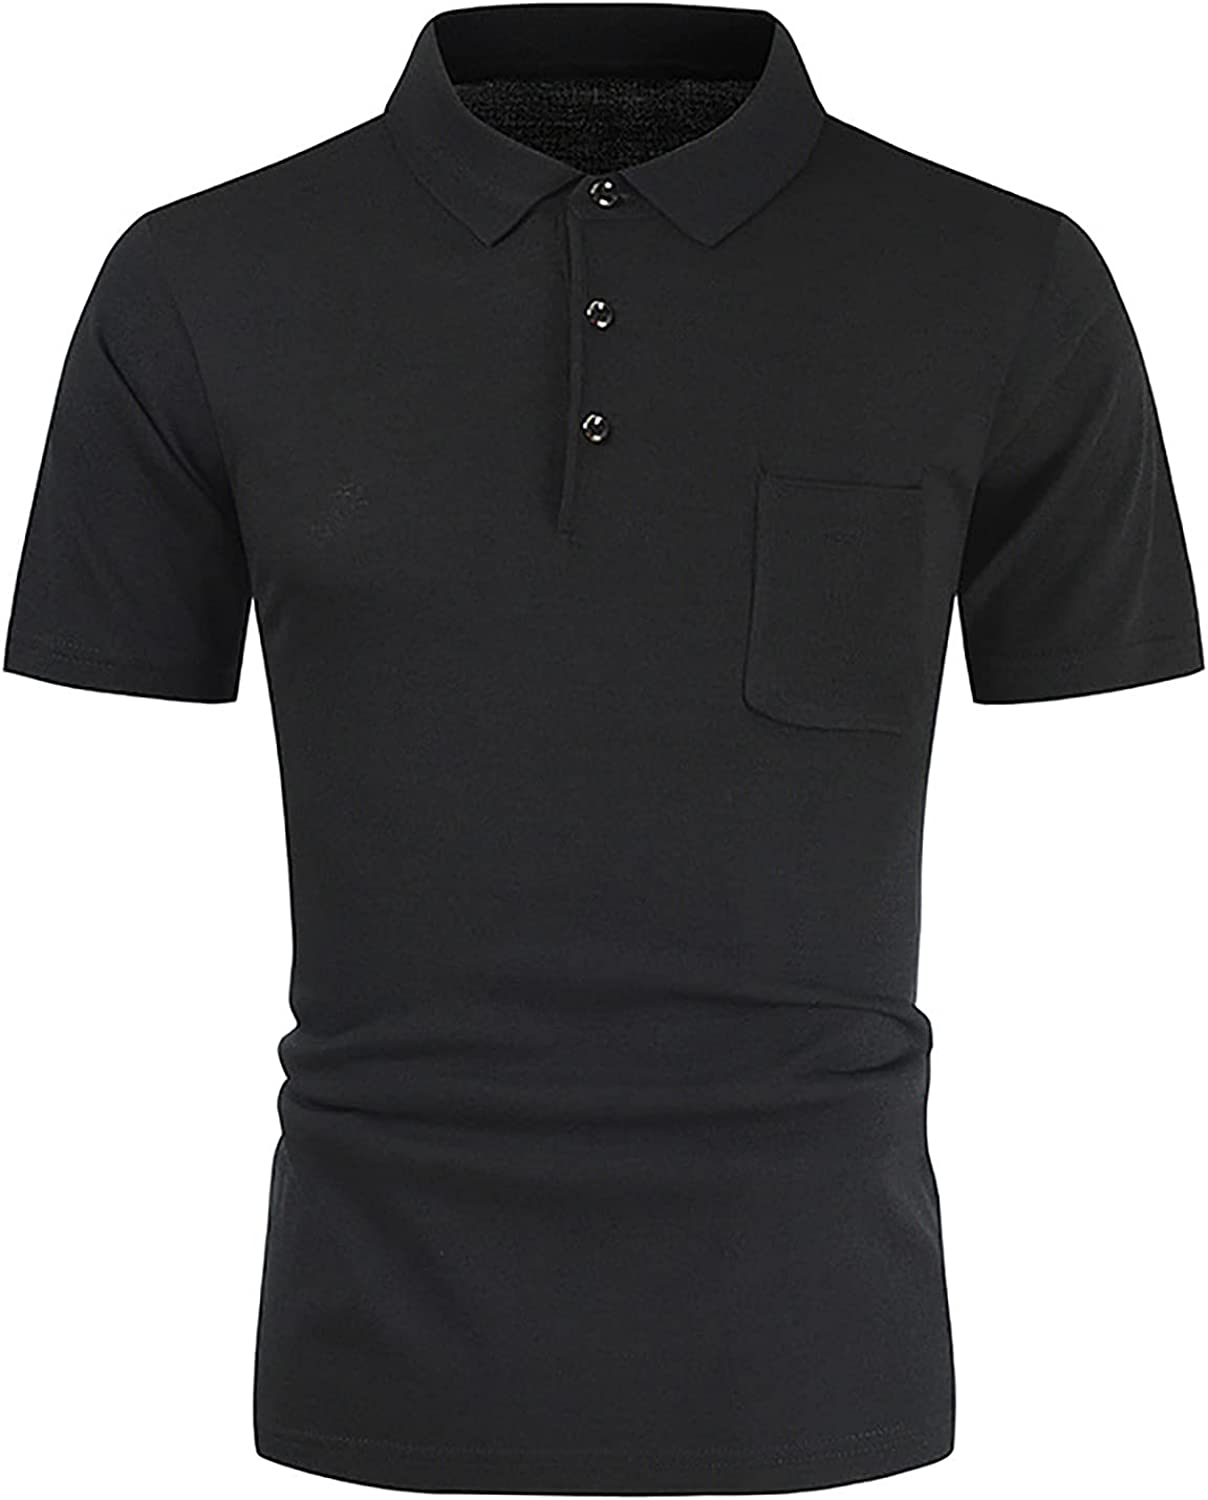 Men's Polo Shirt, Plain Classic Lapel Short Sleeve Slim Fit Shirts Lightweight Casual Tops with Pocket